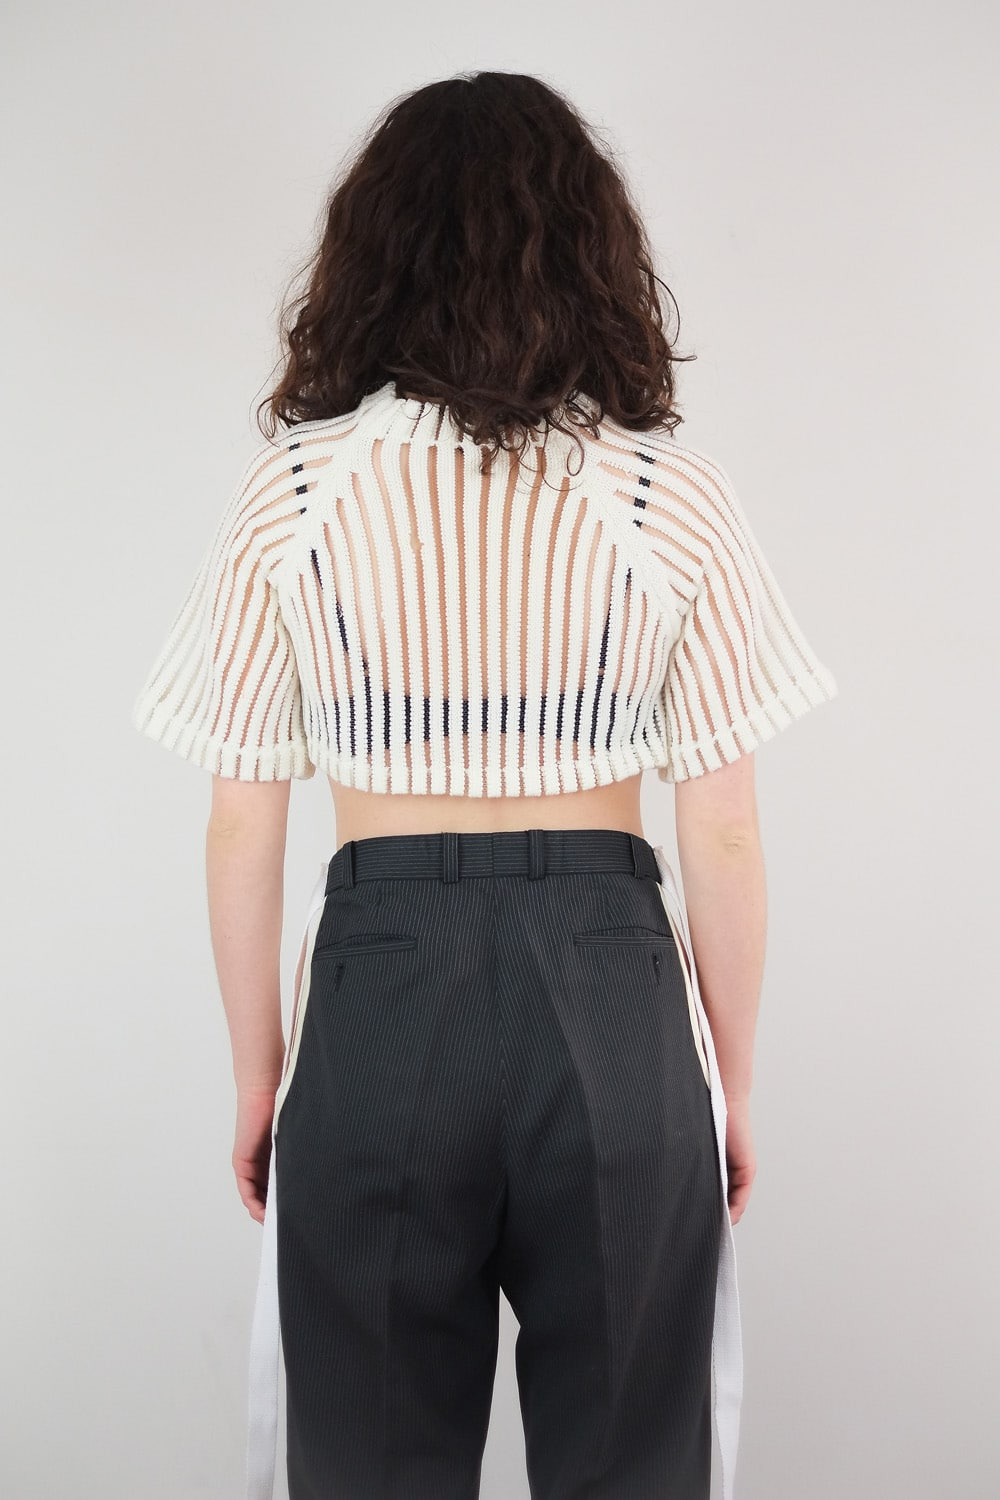 Reworked Cut Out Pants 4